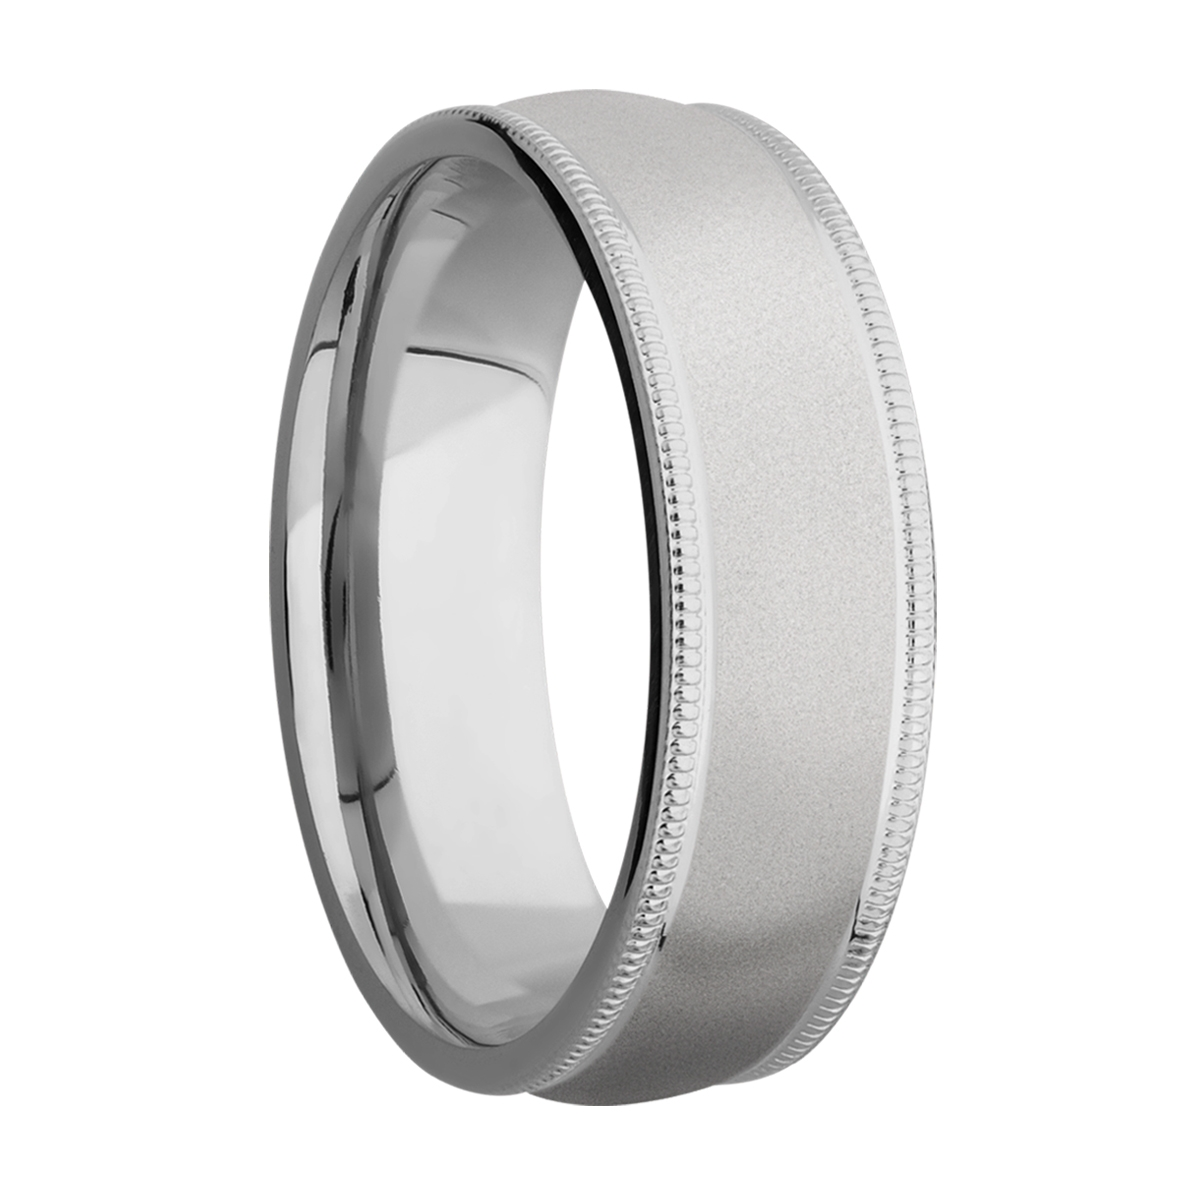 Lashbrook 7DMIL Titanium Wedding Ring or Band Alternative View 1